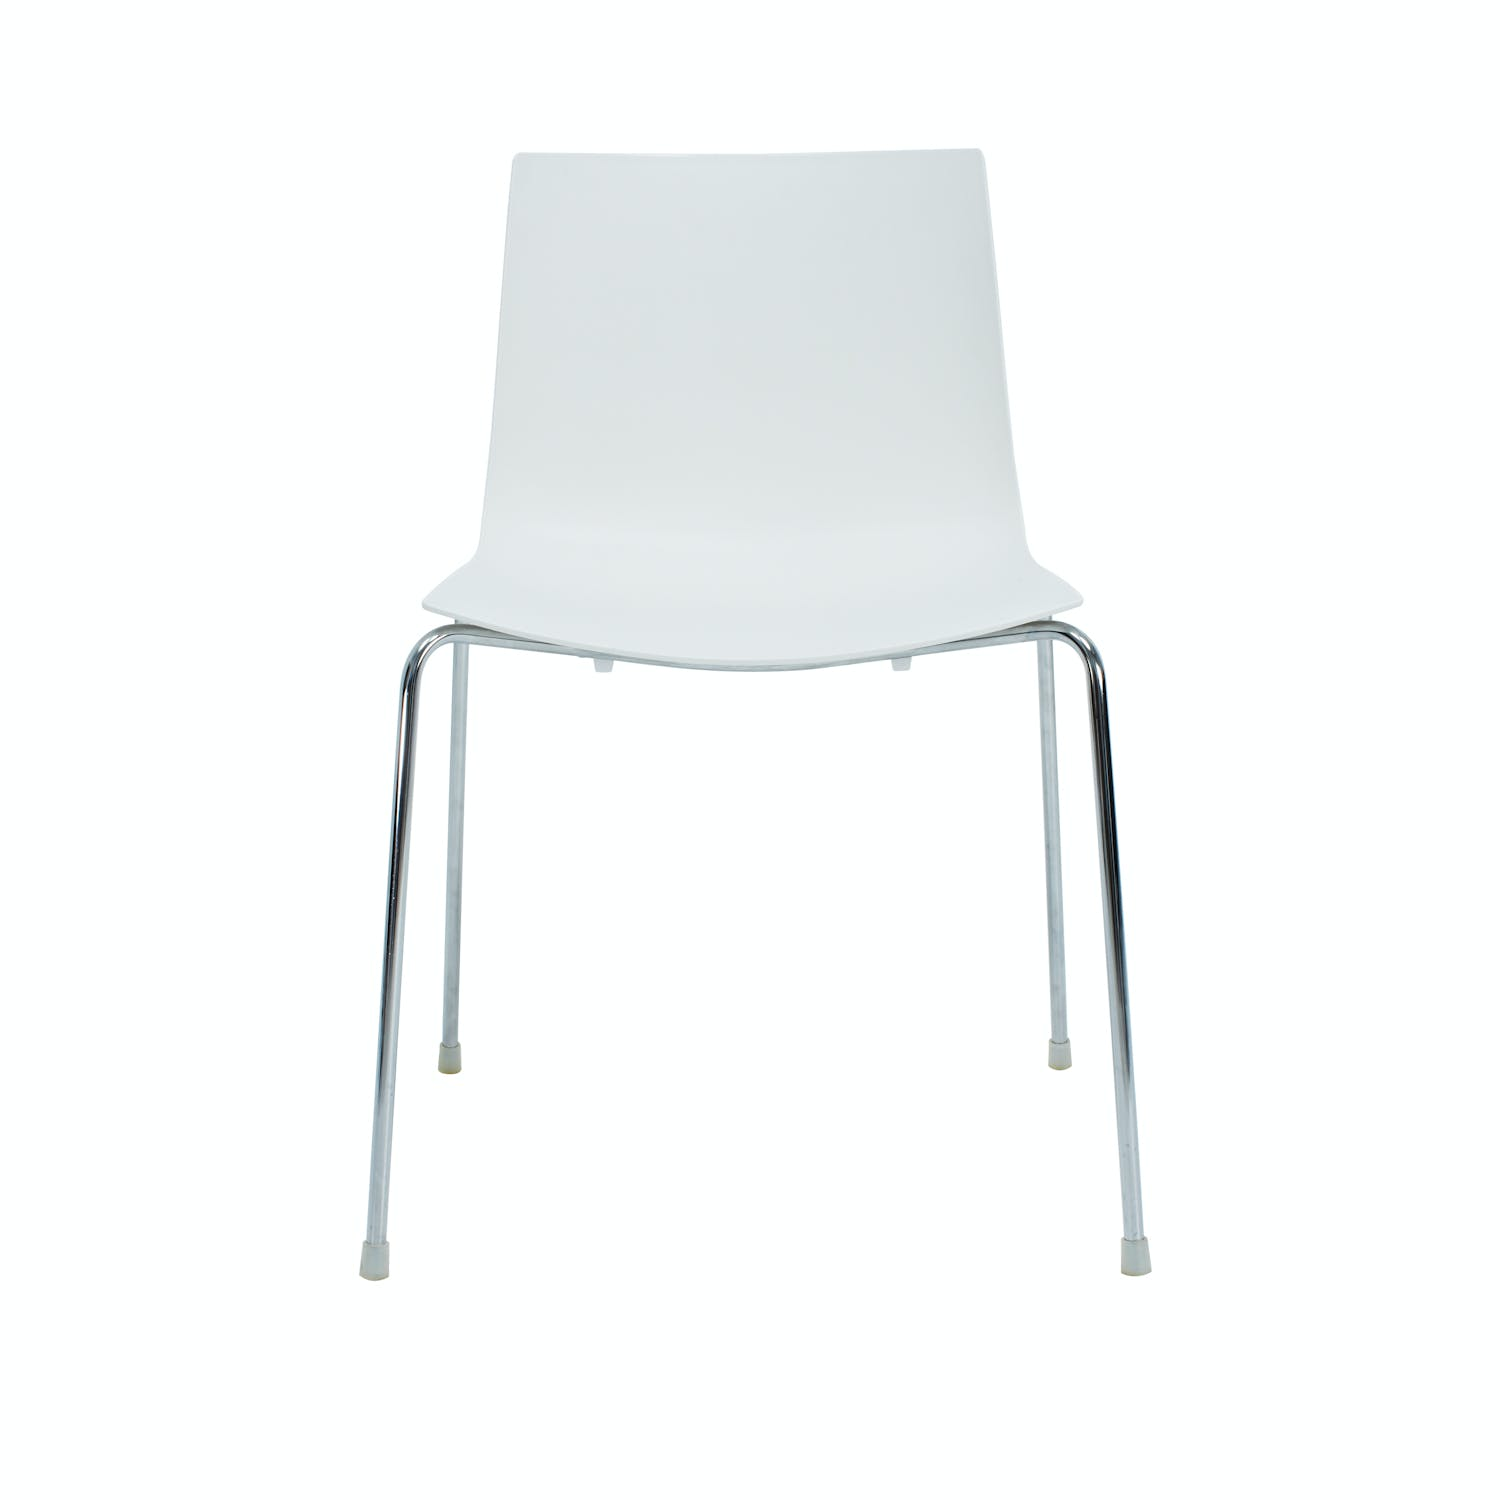 Product Image - Catifa 46 Chair